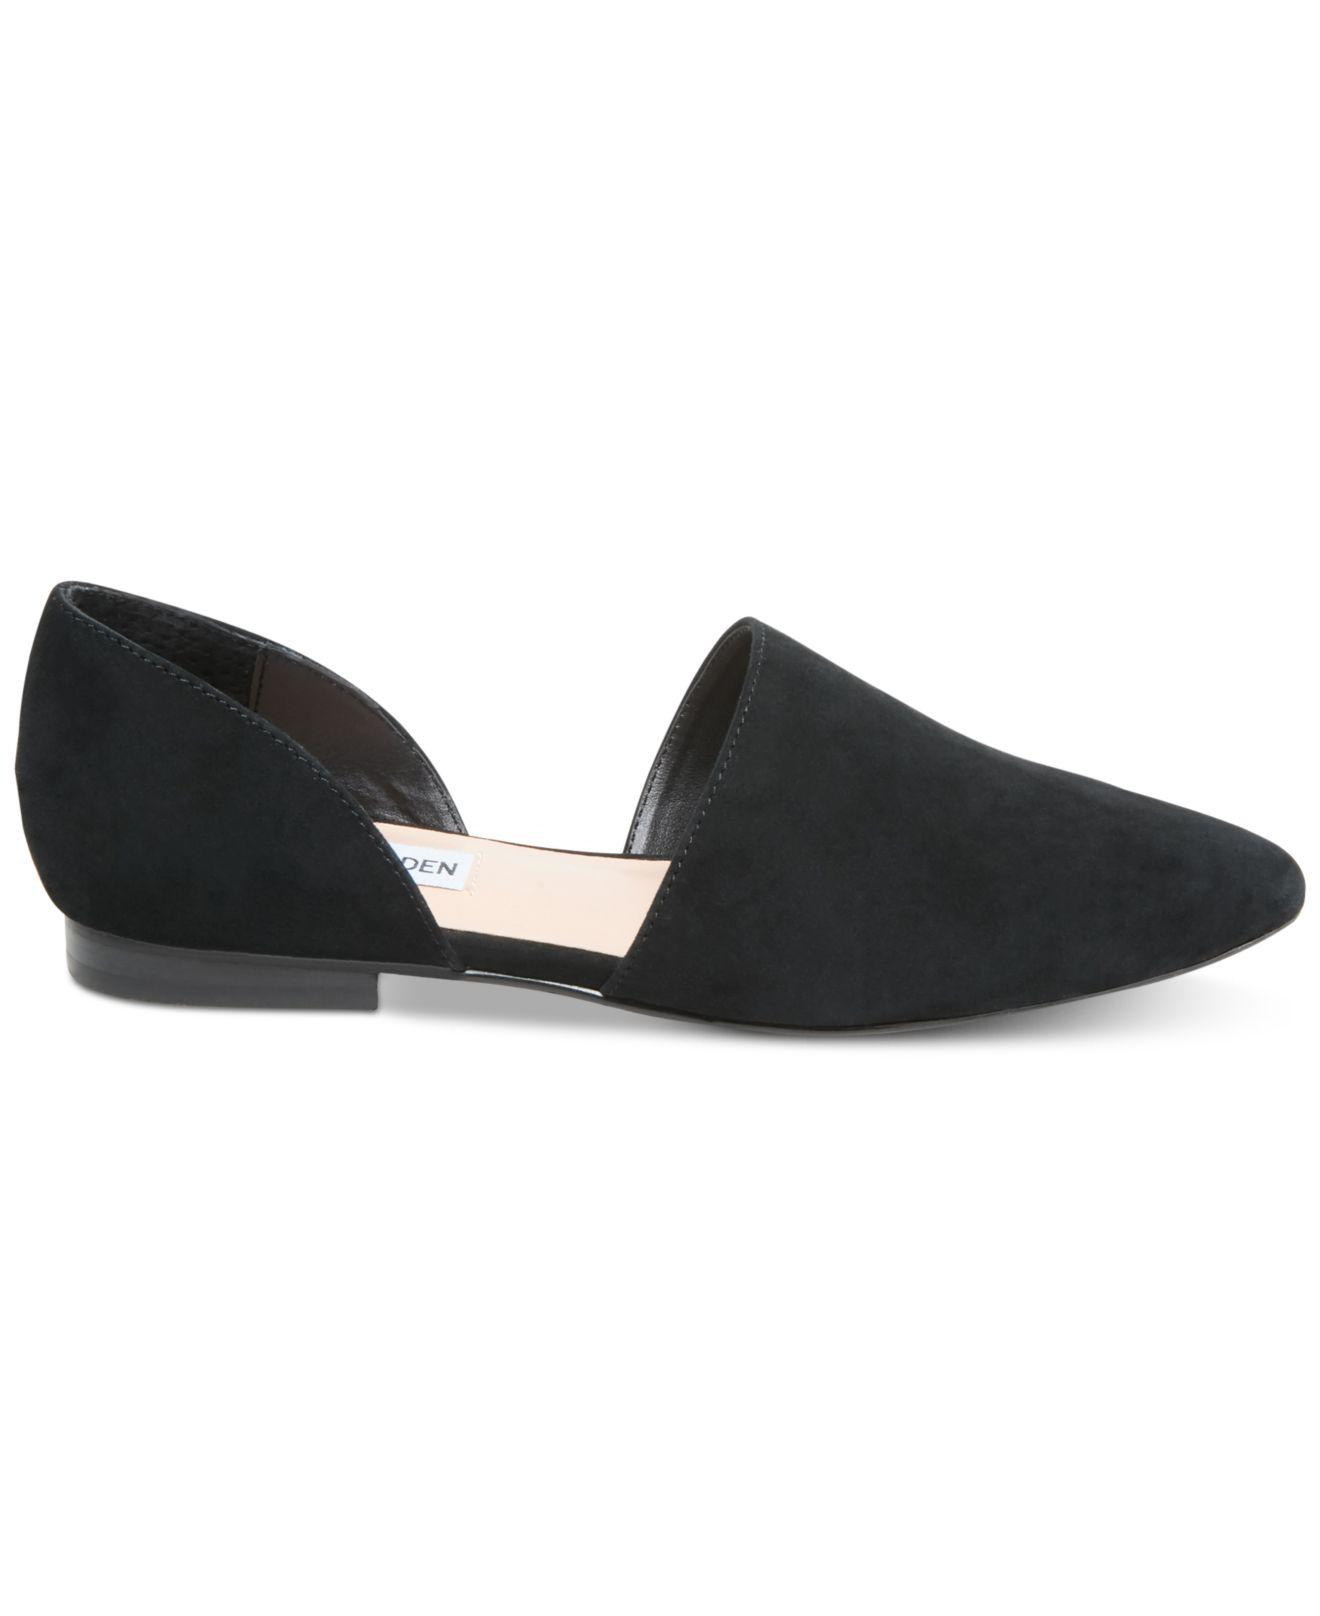 e674f3ca8b4 Lyst - Steve Madden Talent Two-piece Flats in Black